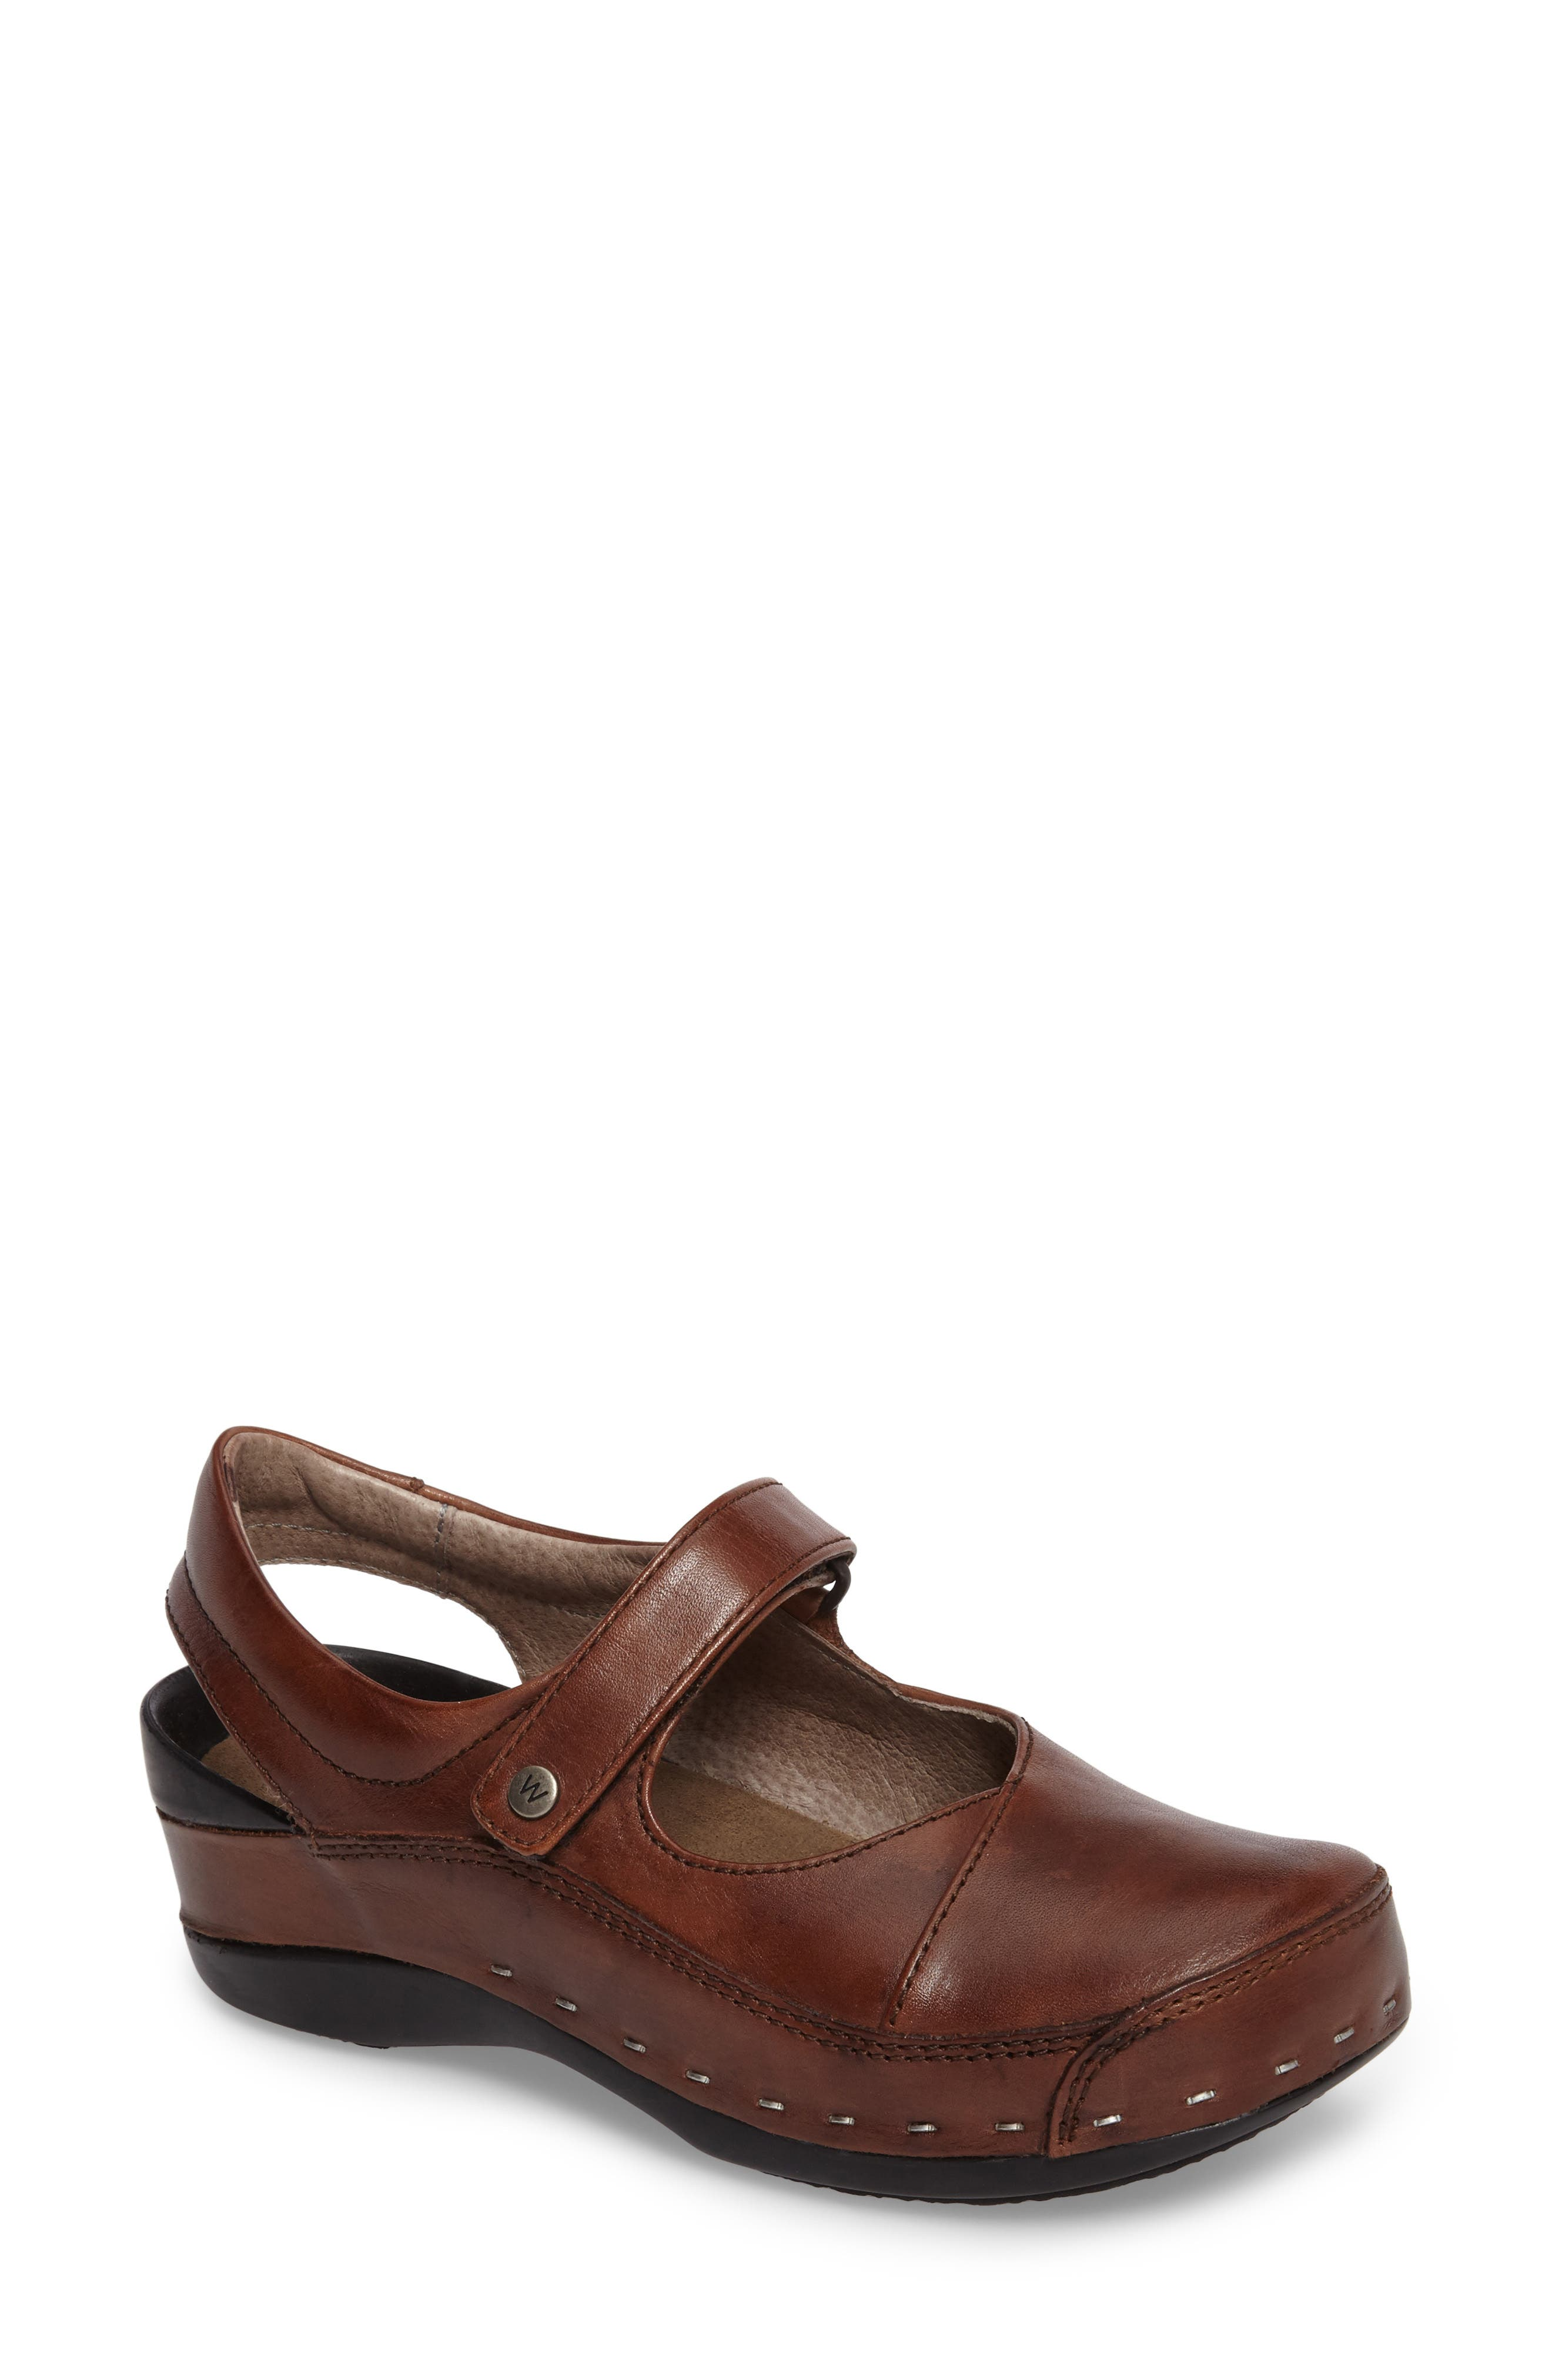 Wolky Slingback Clog (Women)